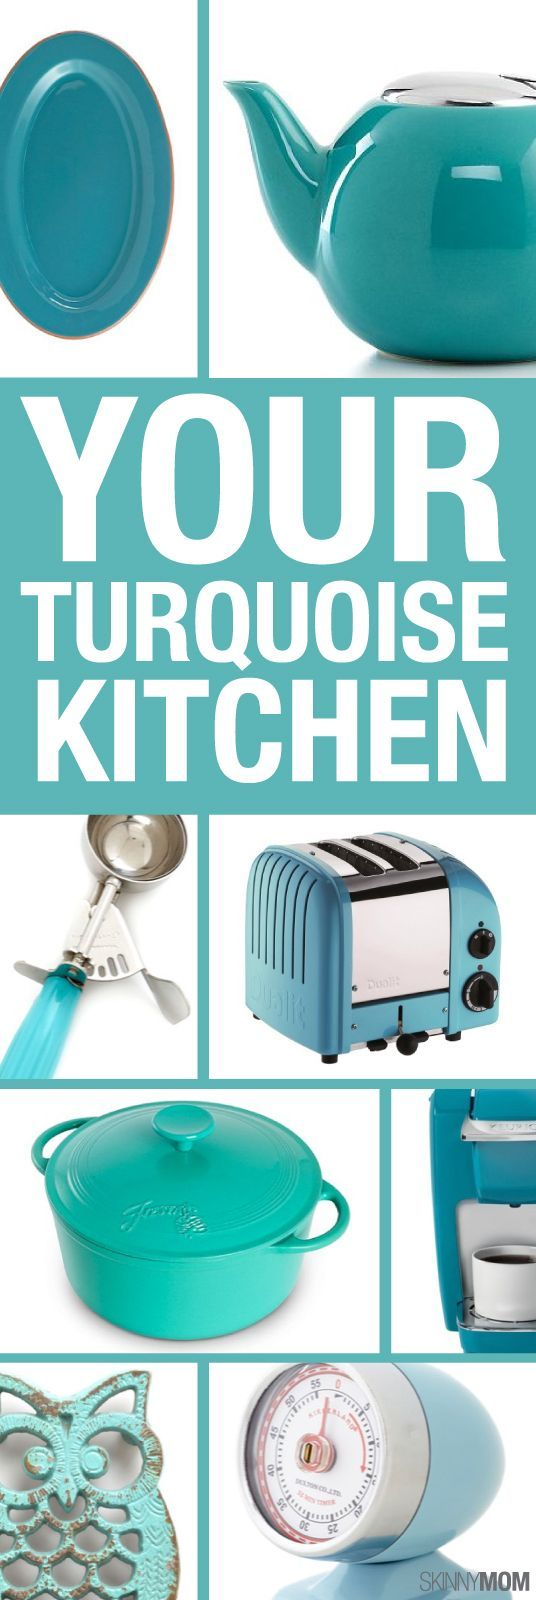 Out of the Blue: Must-Have Turquoise Kitchen Items | Türkis, Zuhause ...